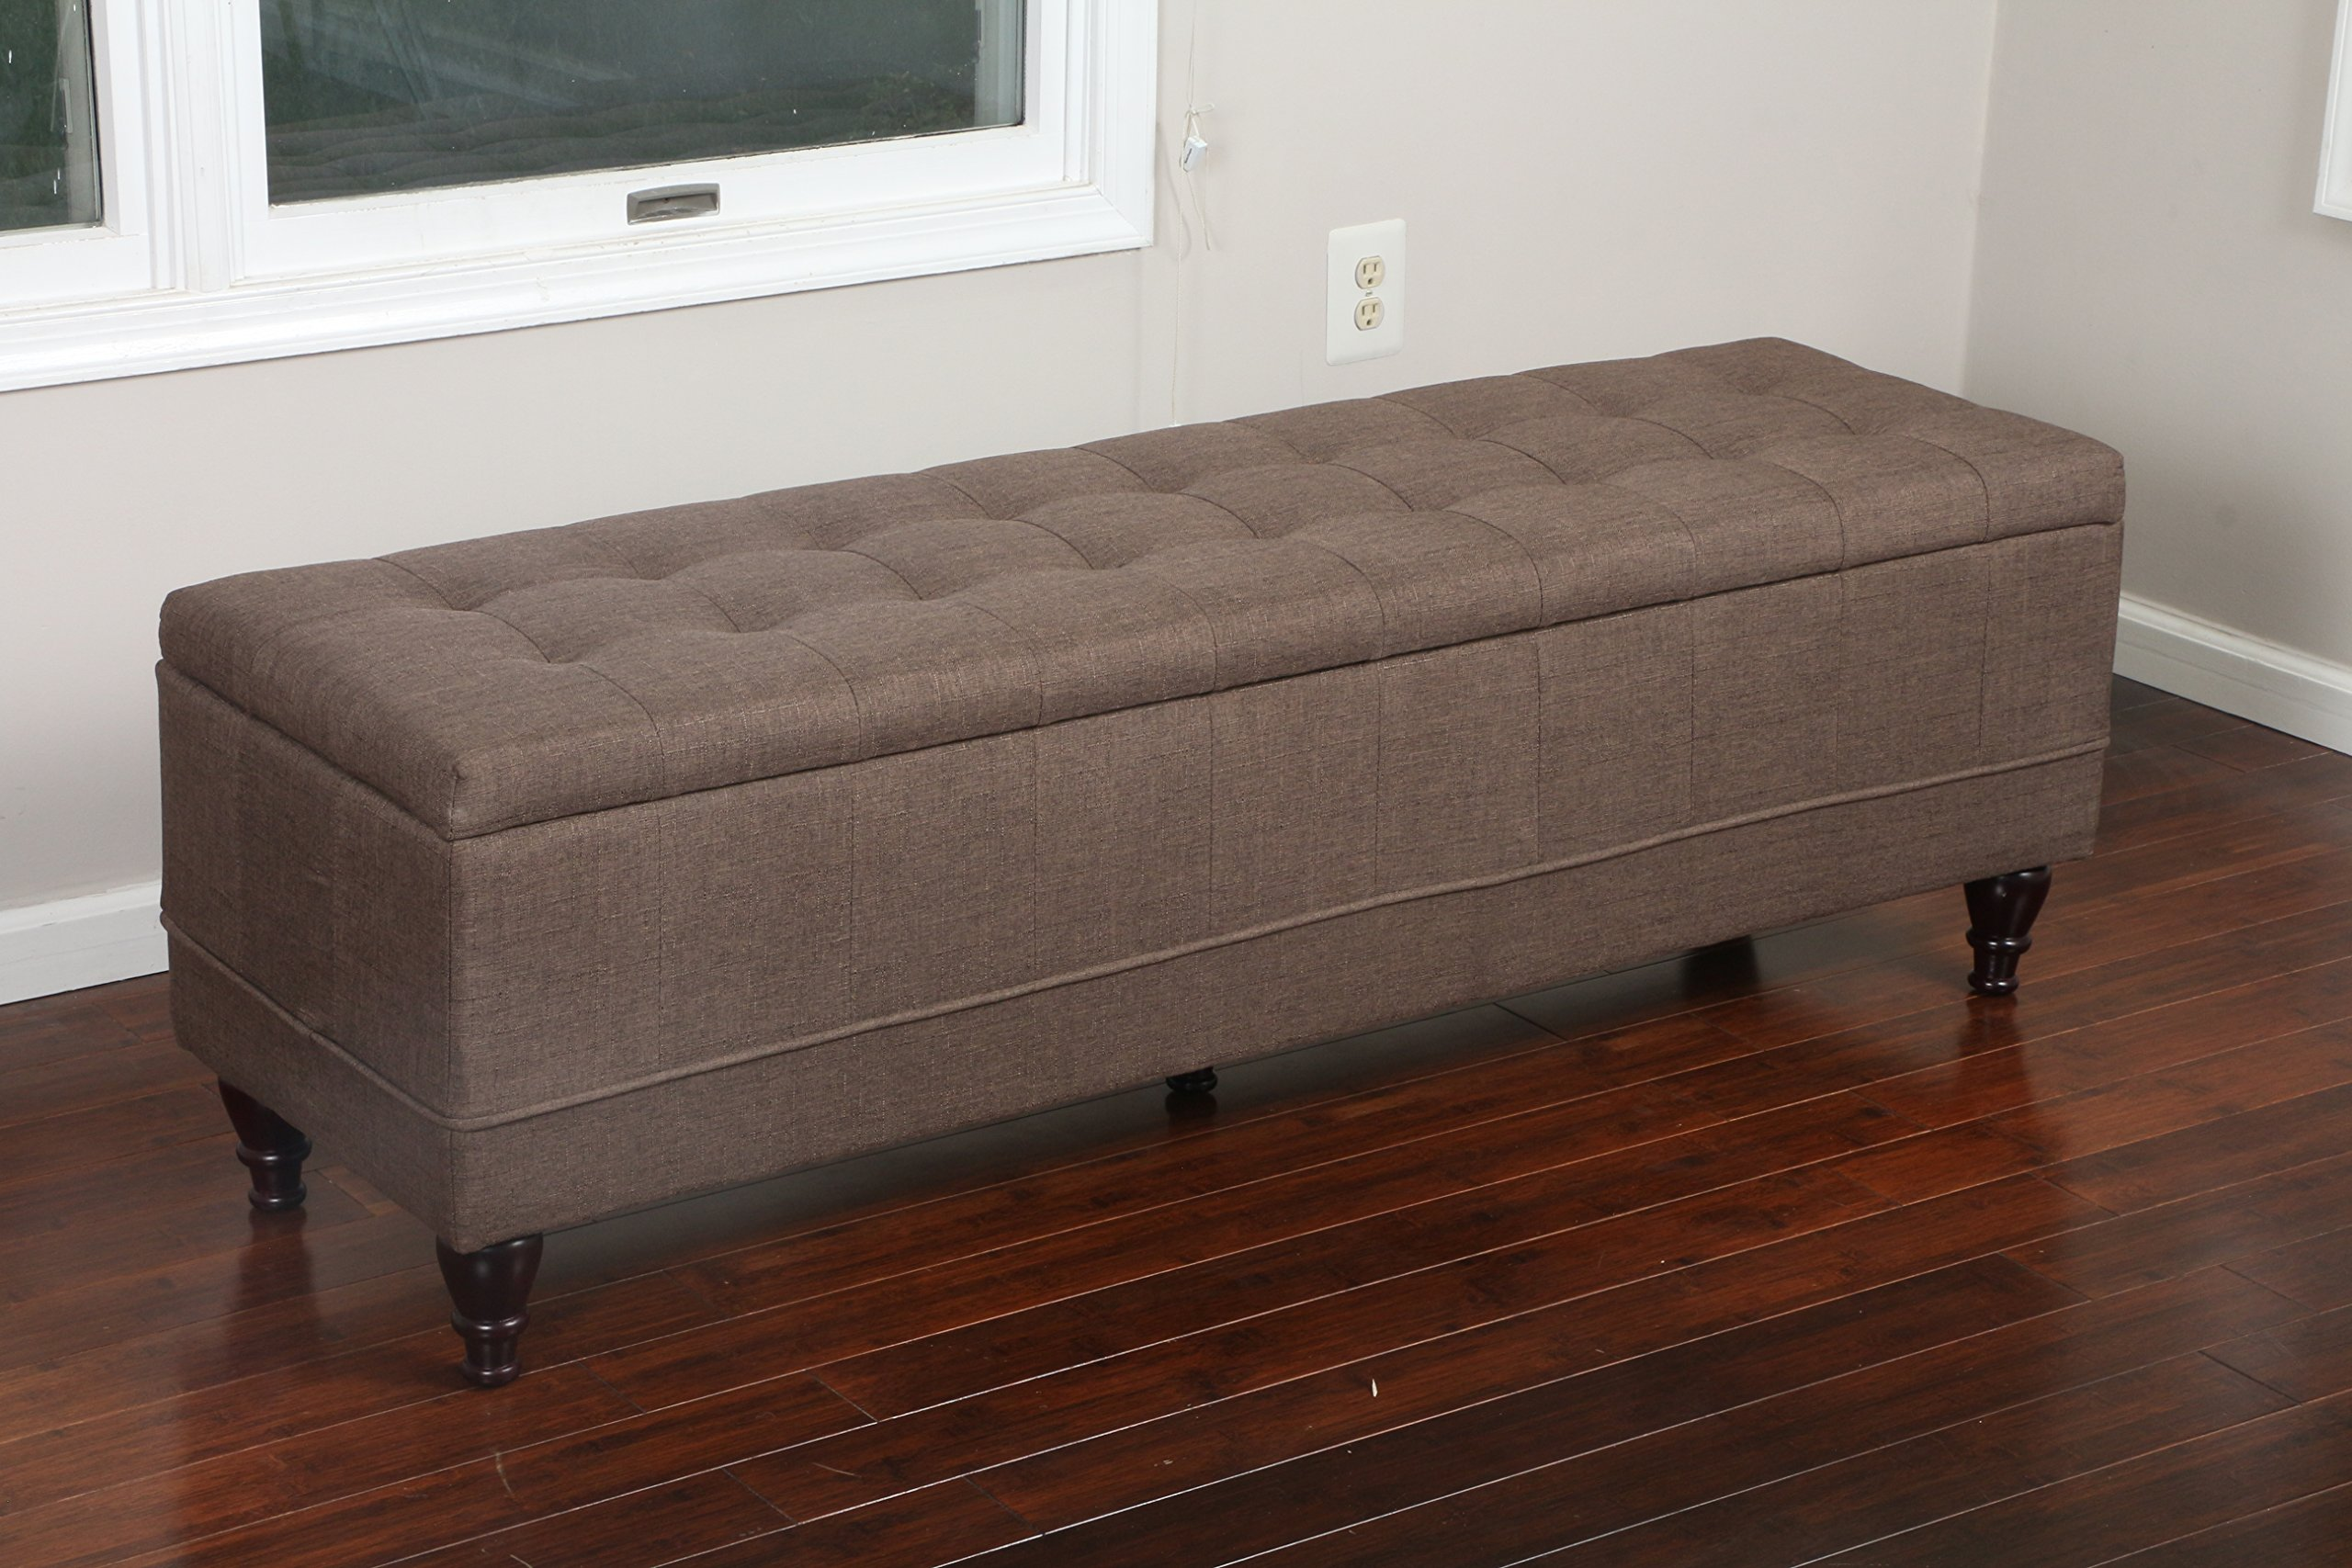 Home Life 59'' x 17'' Extra Long Front of Bed Storage Lift Top Bench Ottoman, Queen, Brown by LIFE Home (Image #1)